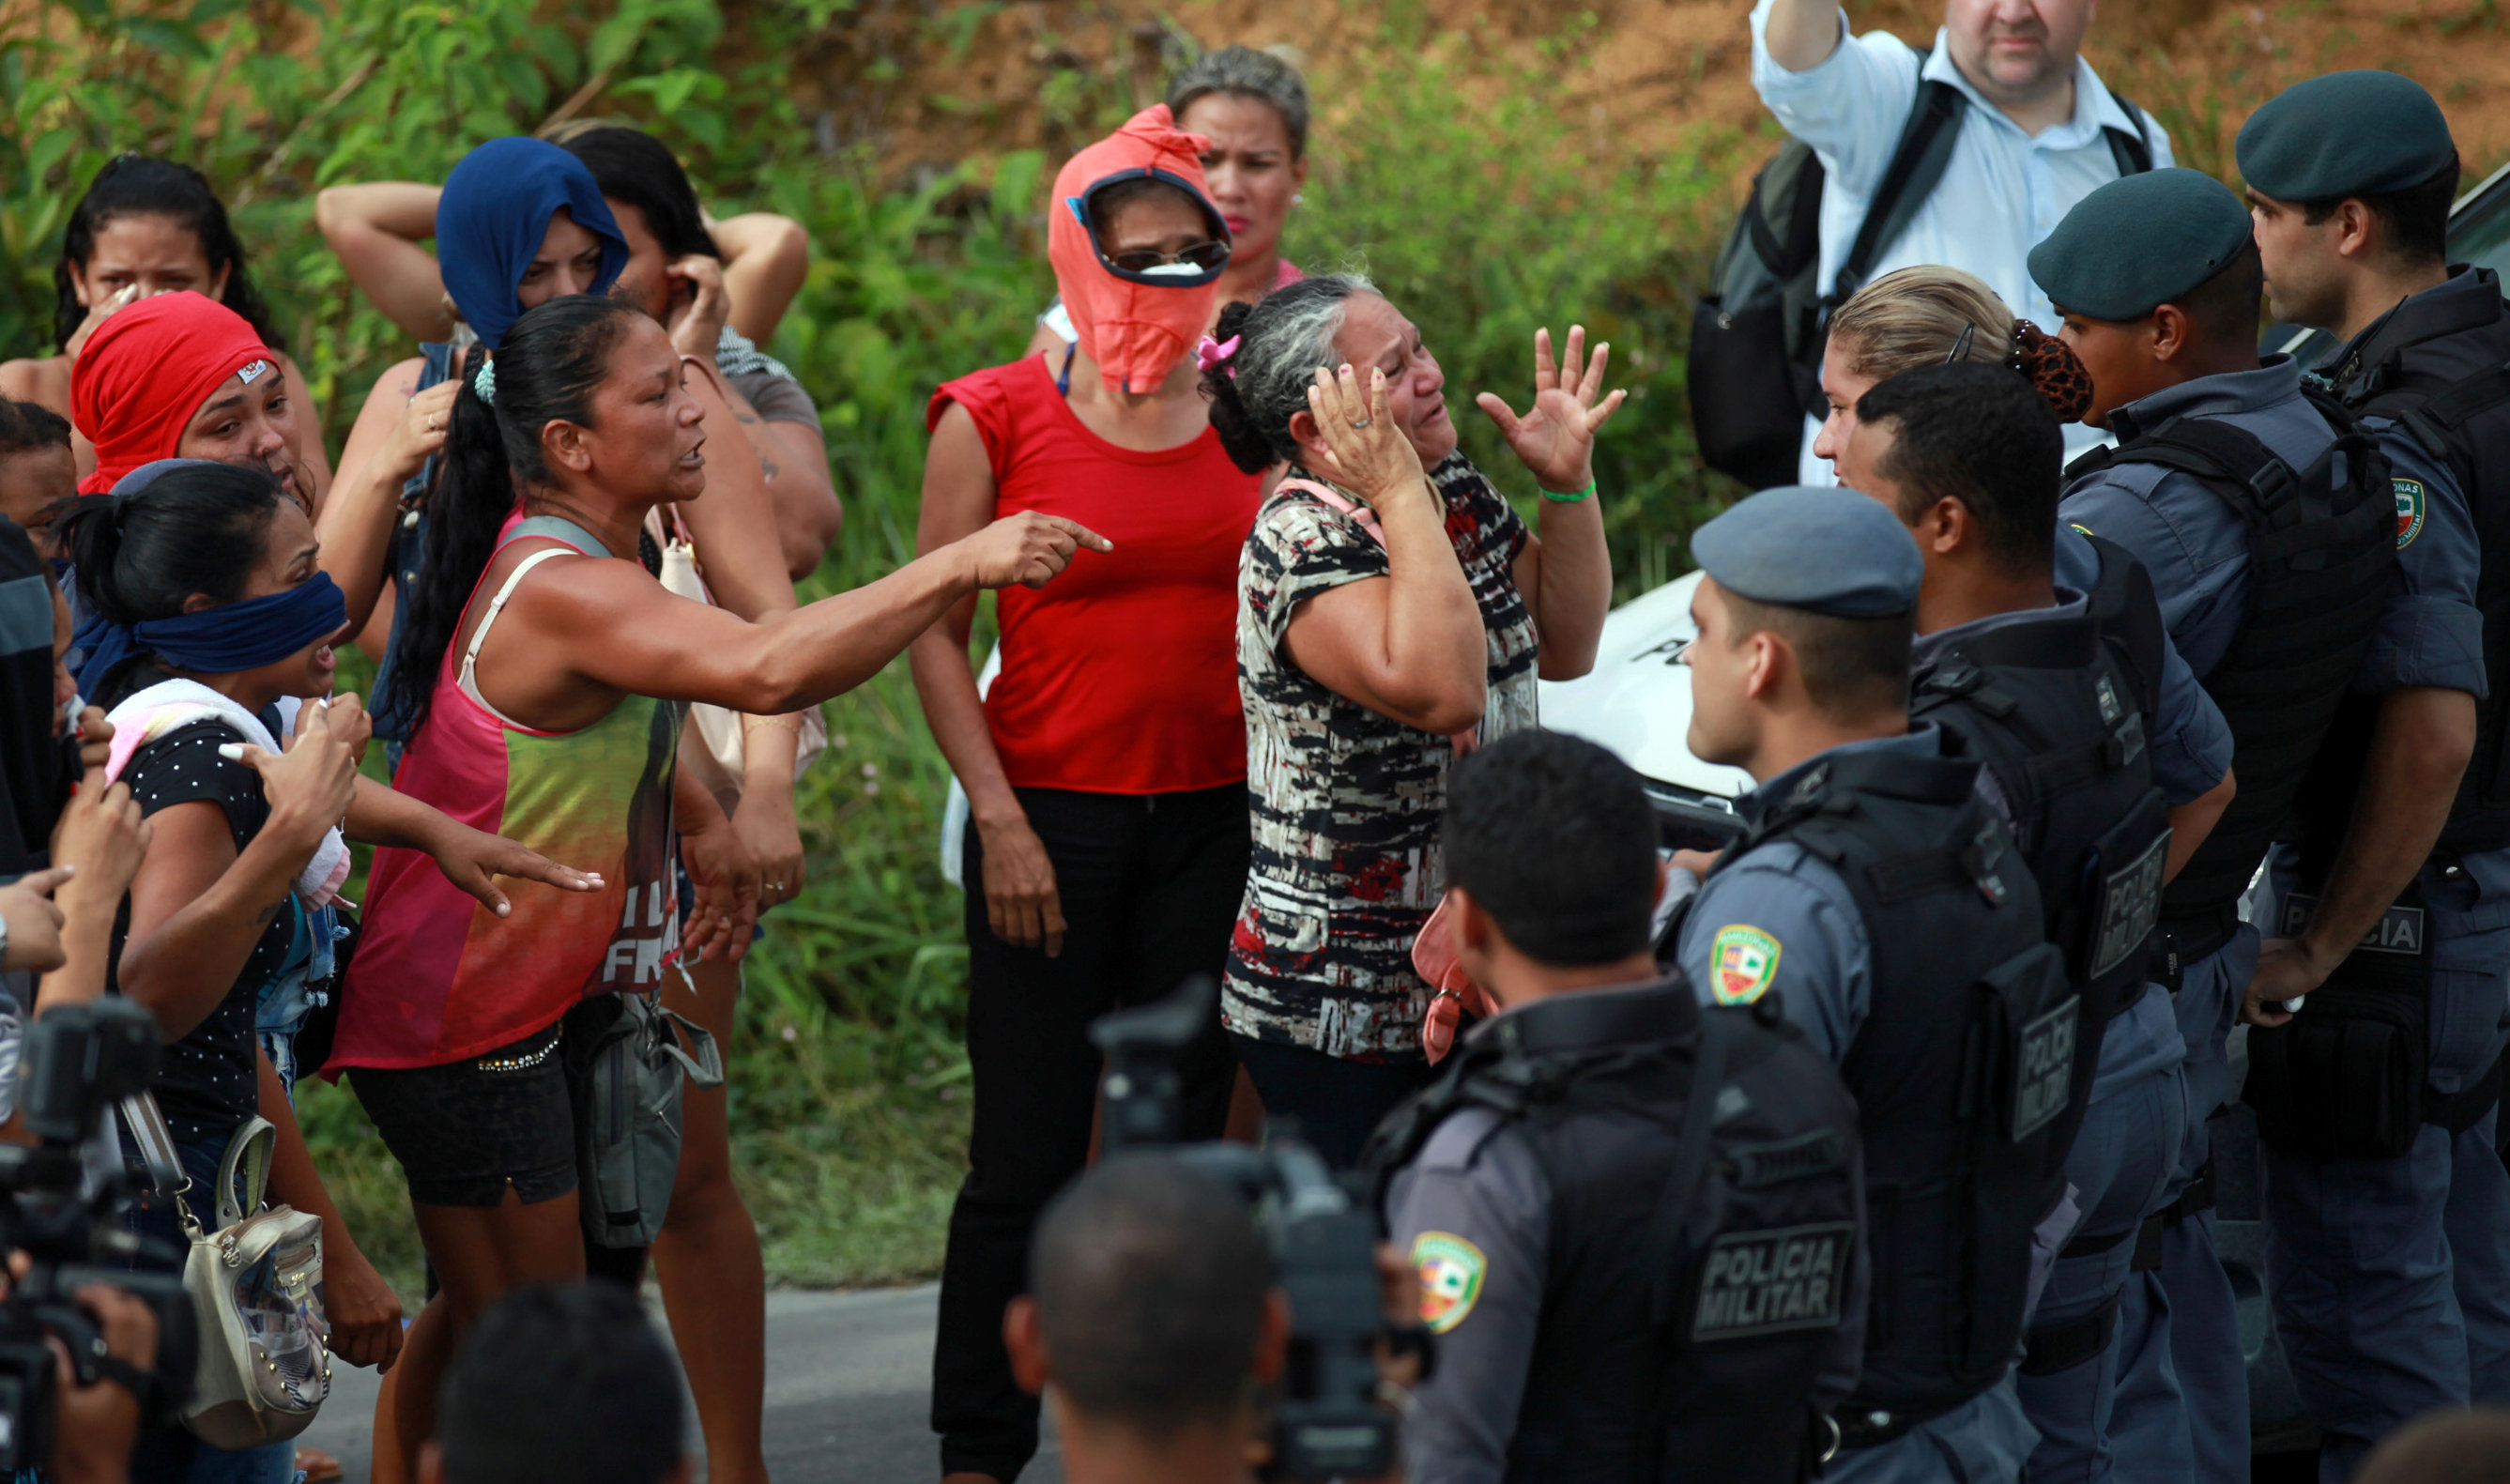 Relatives of prisoners react near riot police at a checkpoint close to the prison where around 60 people were killed in a prison riot in the Amazon jungle city of Manaus, Brazil